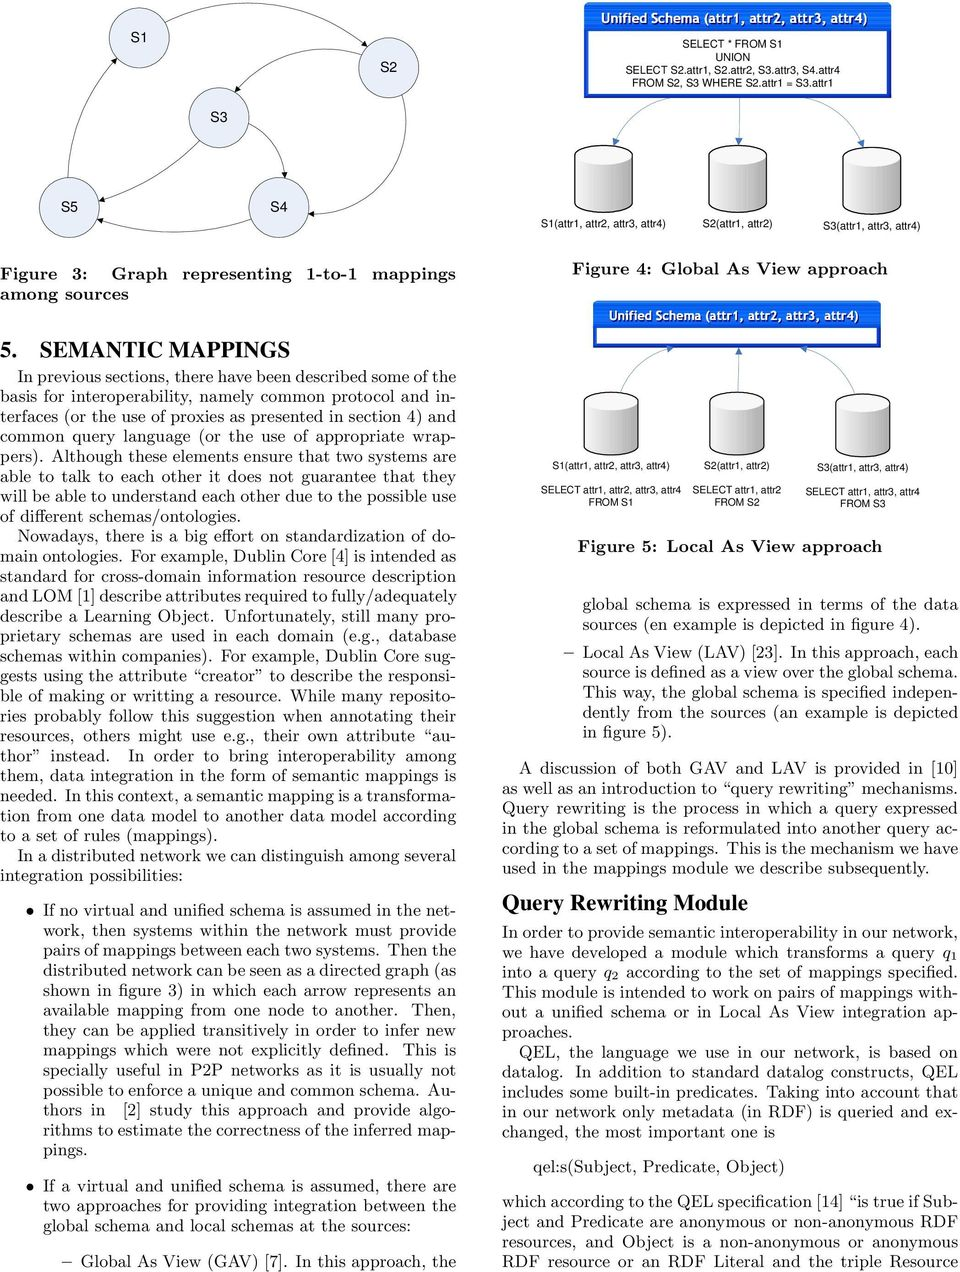 SEMANTIC MAPPINGS In previous sections, there have been described some of the basis for interoperability, namely common protocol and interfaces (or the use of proxies as presented in section 4) and